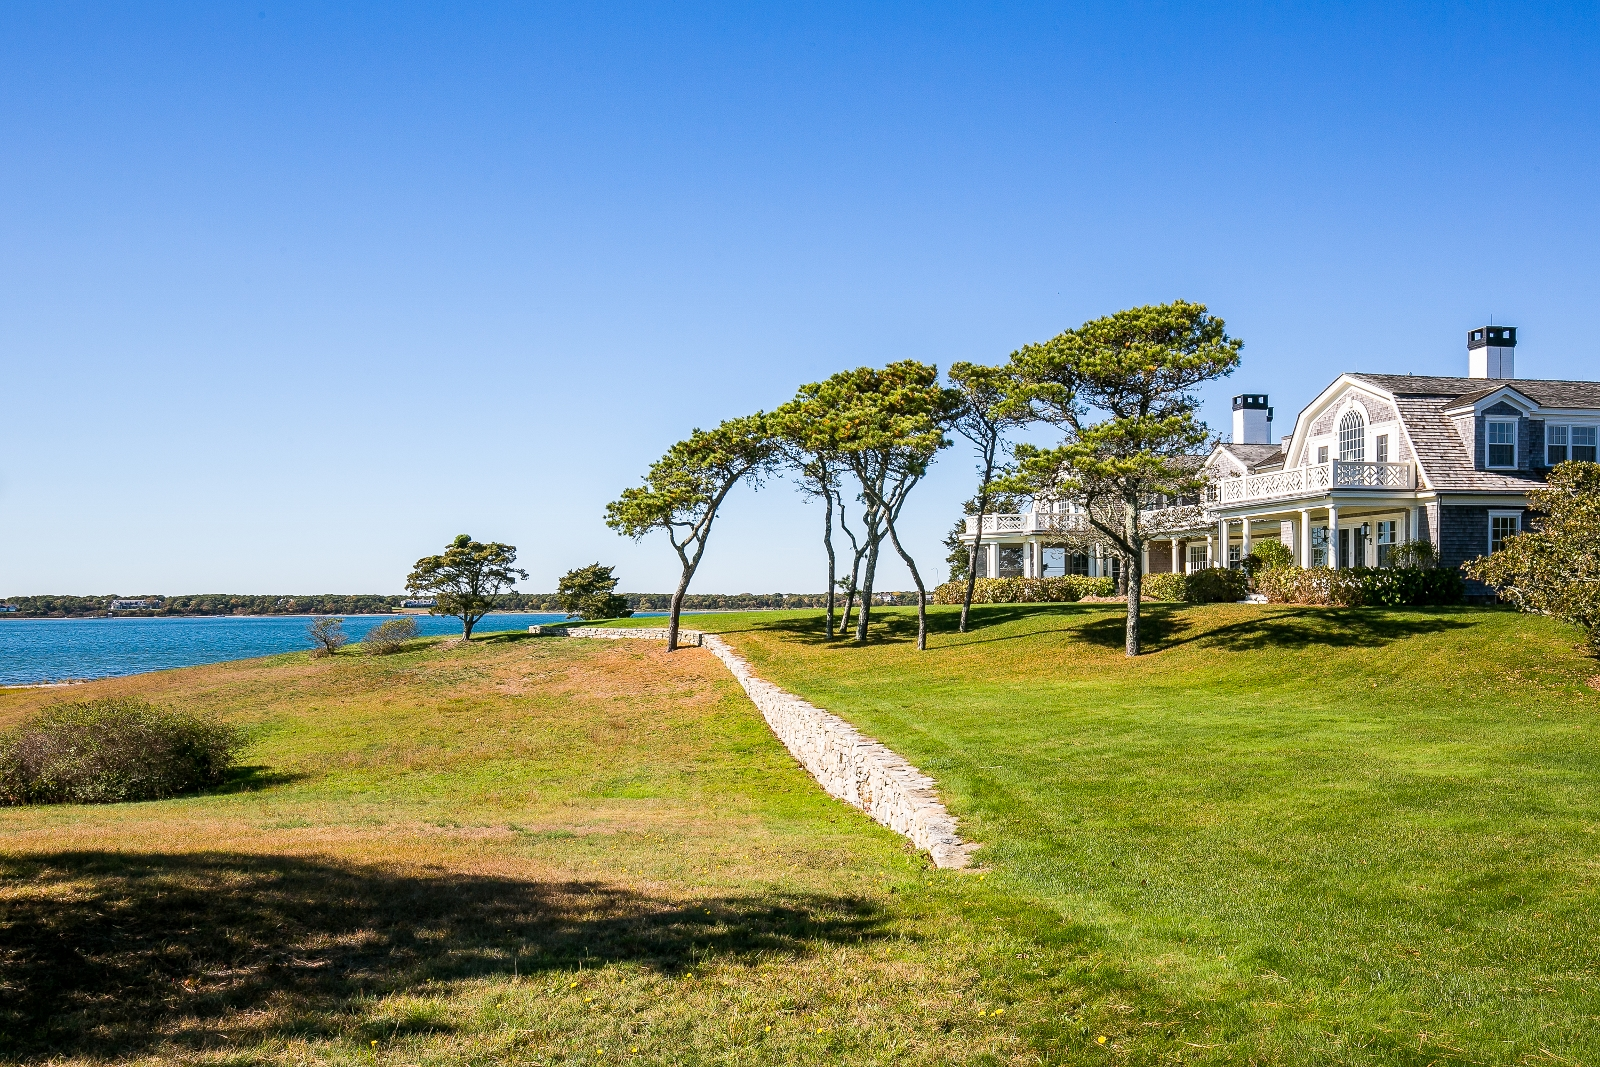 Casa Unifamiliar por un Venta en Magnificent Chappy estate overlooking Katama Bay 22 Lelands Path Edgartown, Massachusetts 02539 Estados Unidos